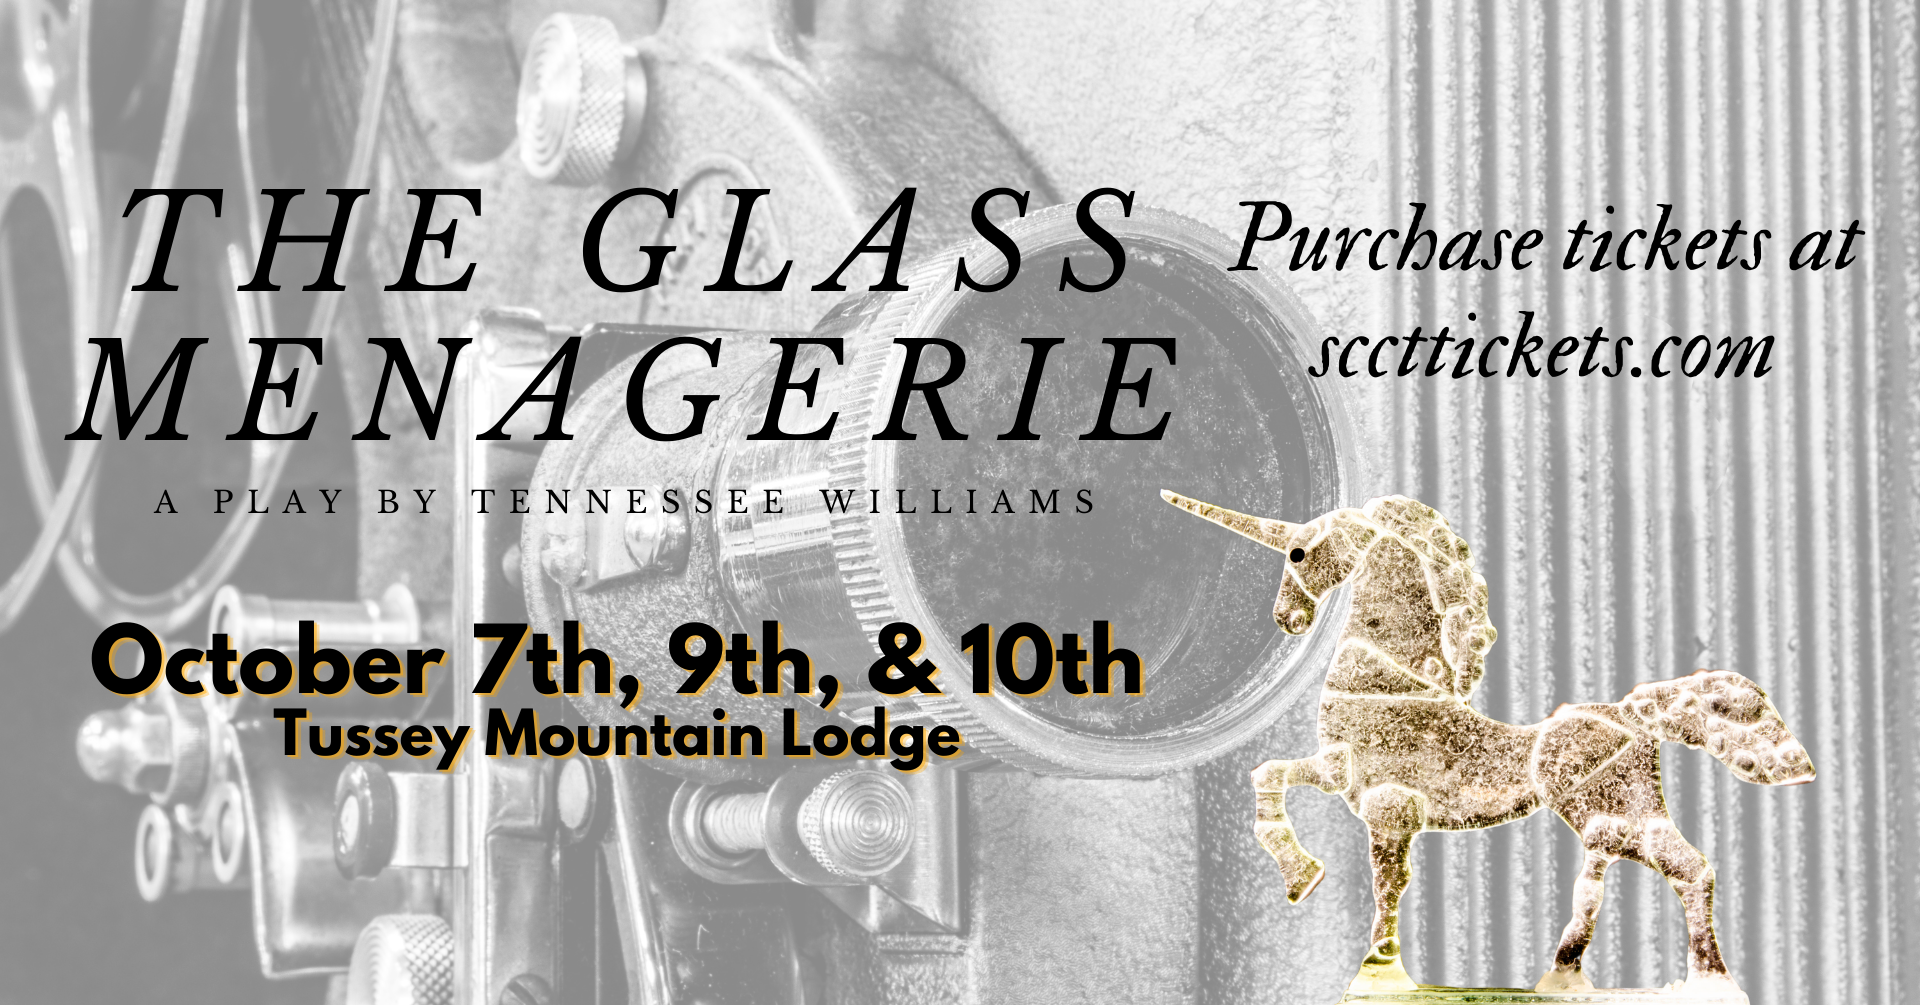 Glass Menagerie - Ad